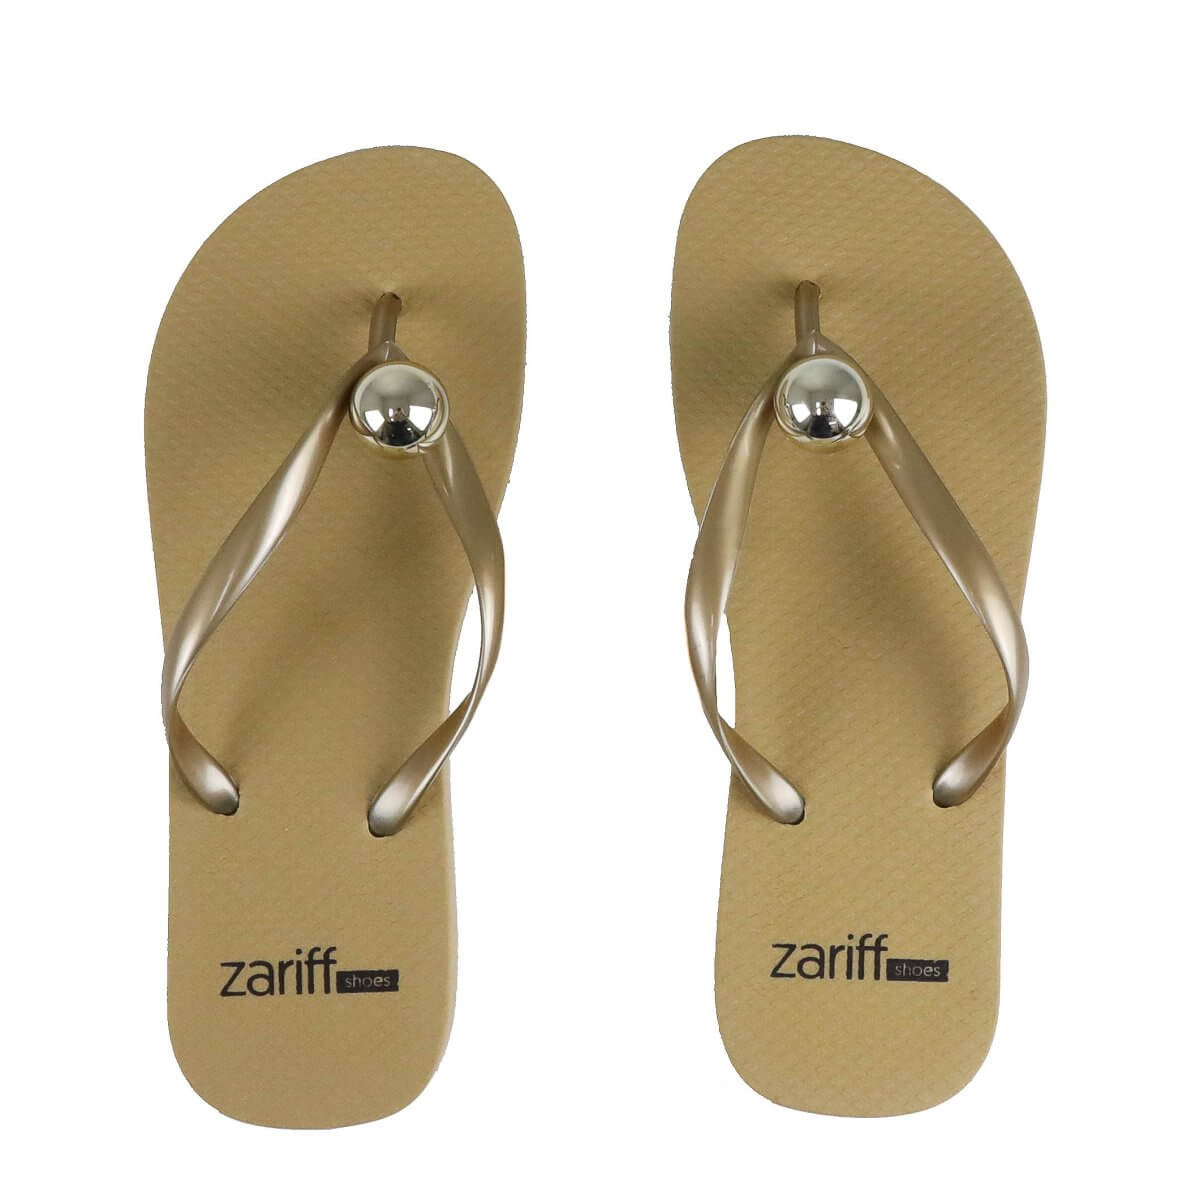 Chinelo Zariff Shoes Estampa Dourado